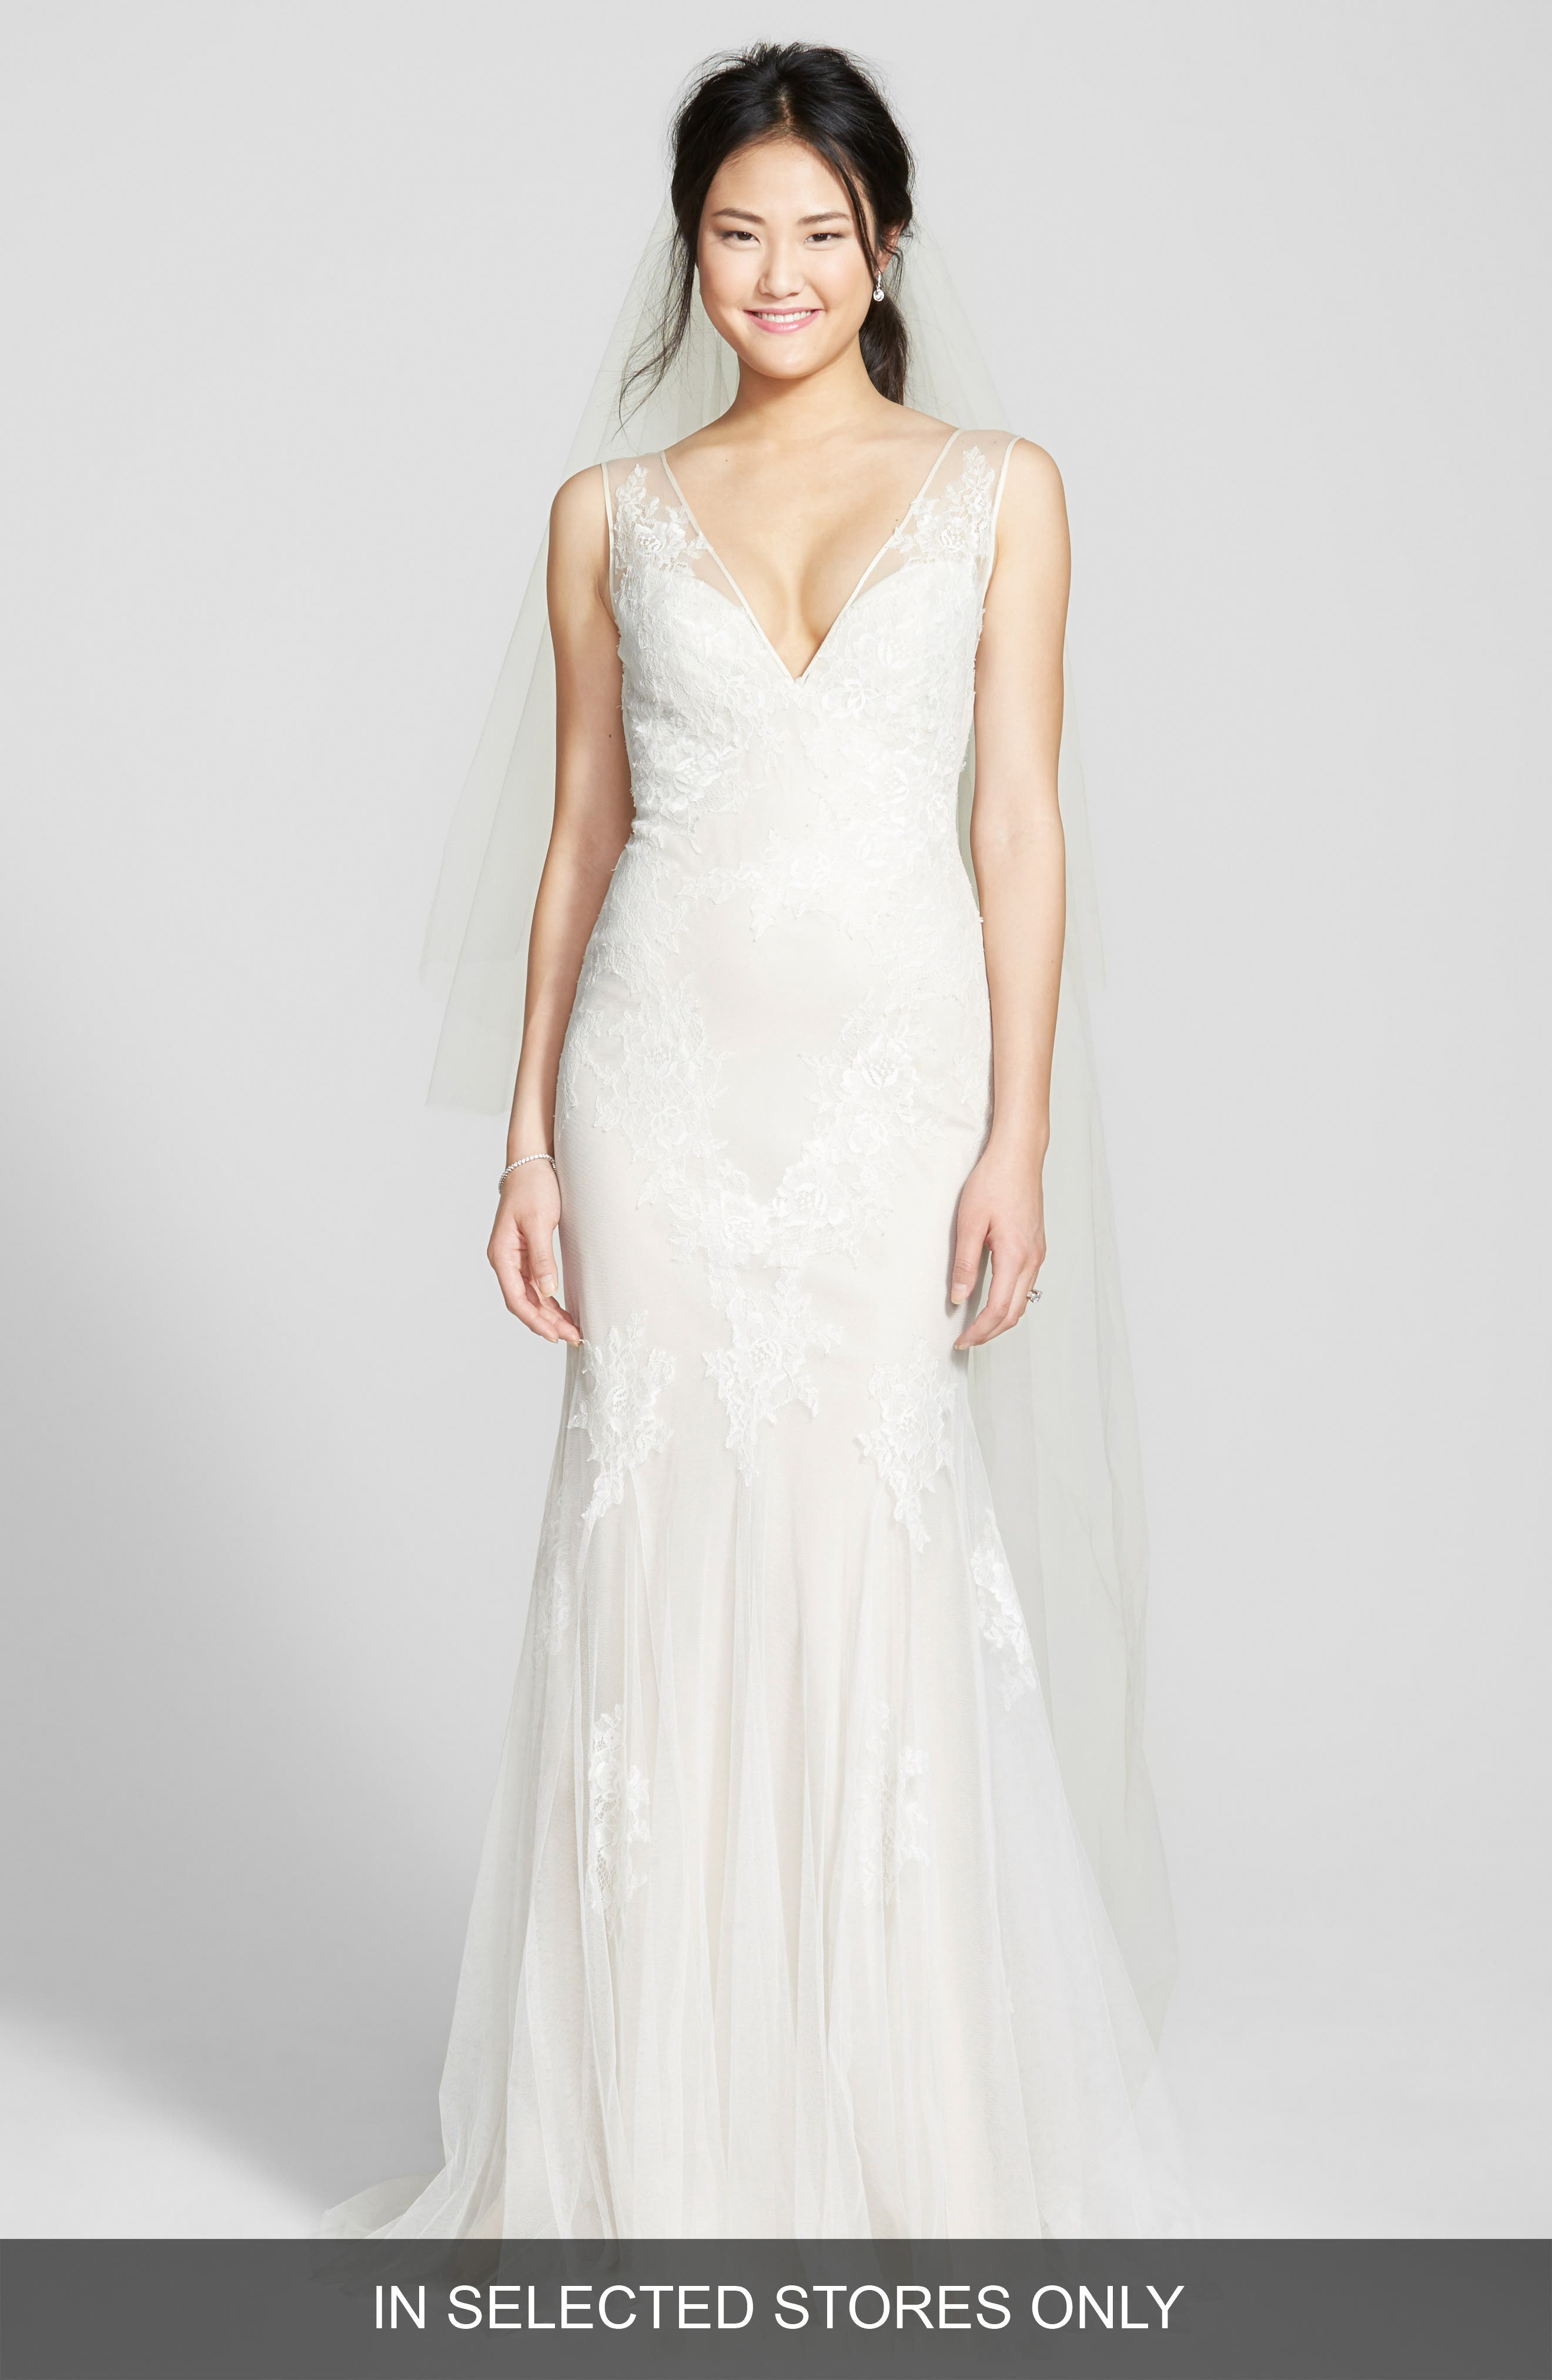 BLISS Monique Lhuillier Chantilly Lace & Tulle Gown (In Stores Only)